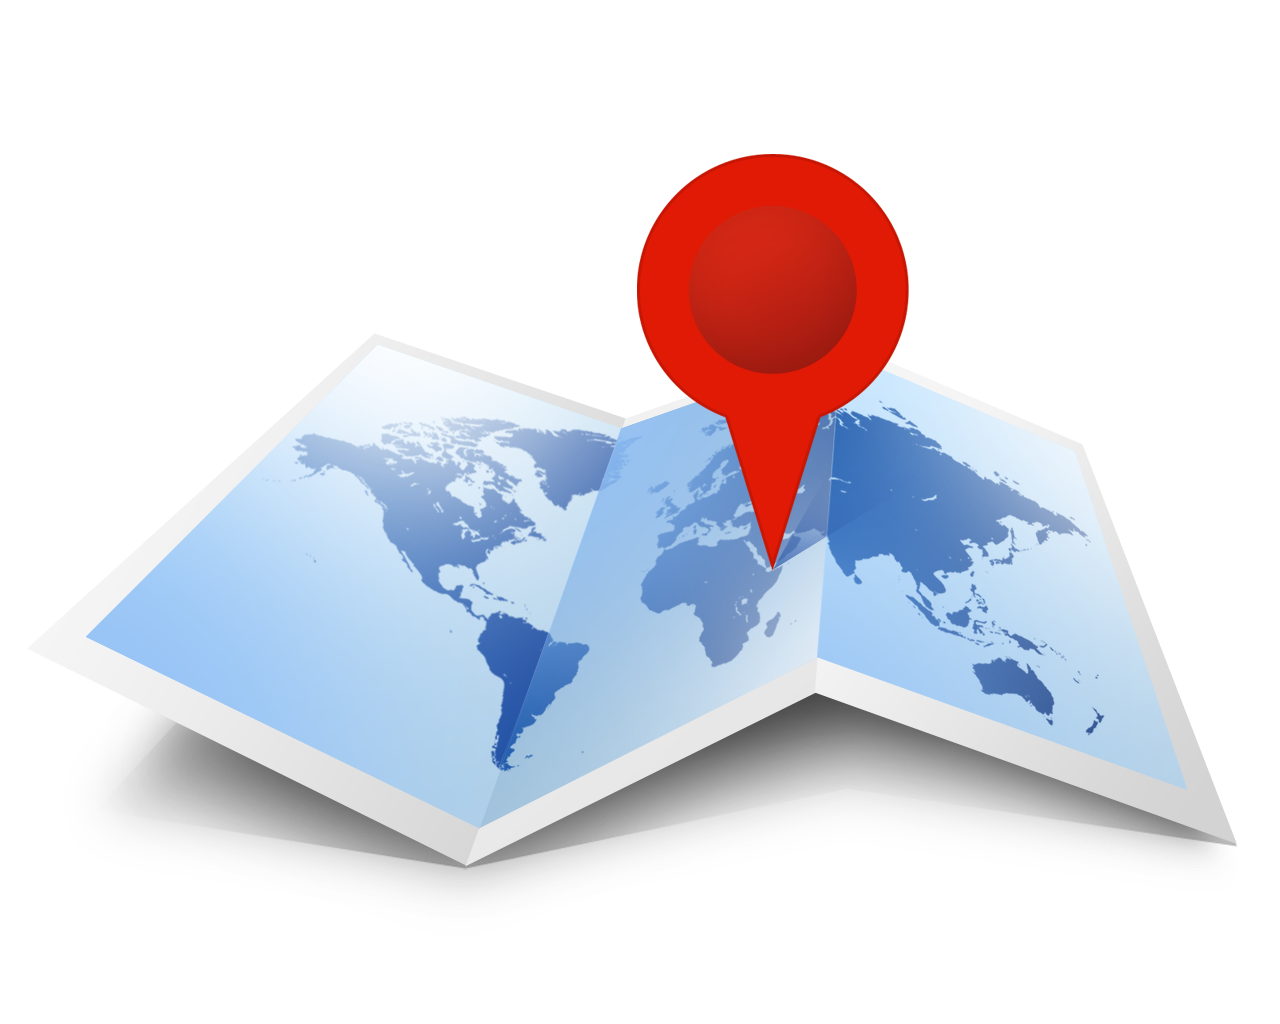 psd-world-map-icon